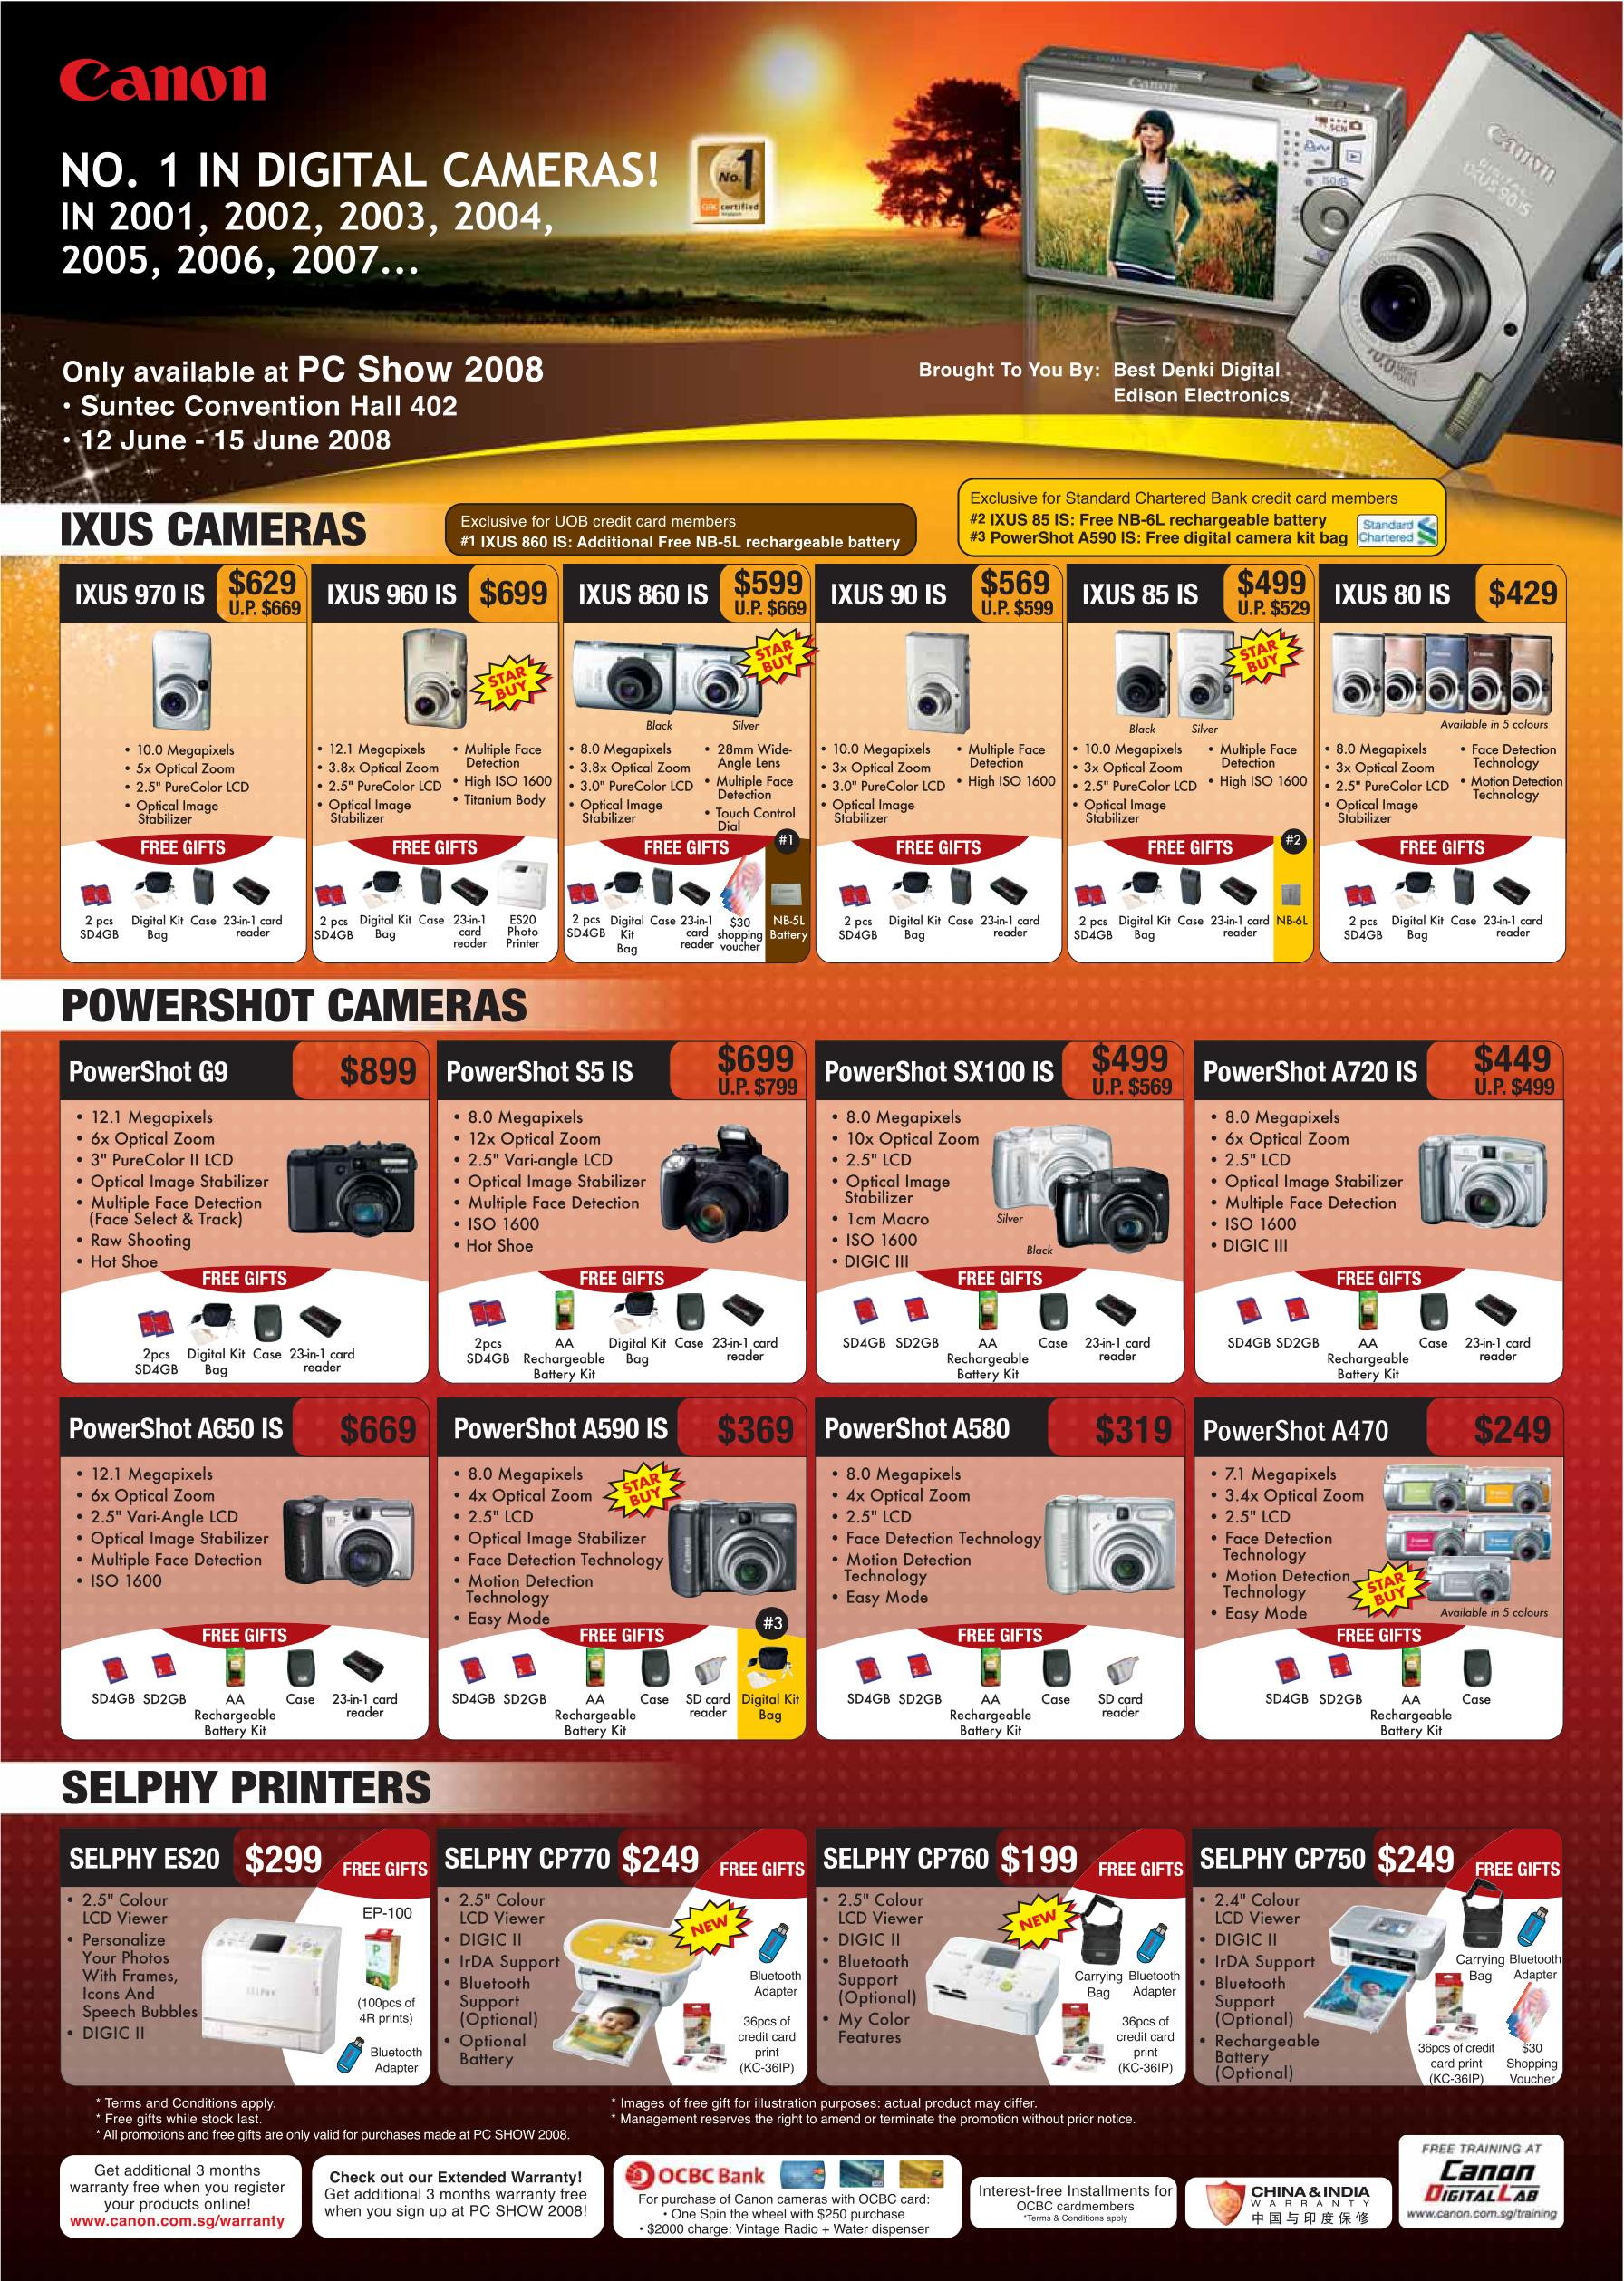 PC Show 2008 price list image brochure of Canon Digital Cameras Ixus Powershot Selphy Printers